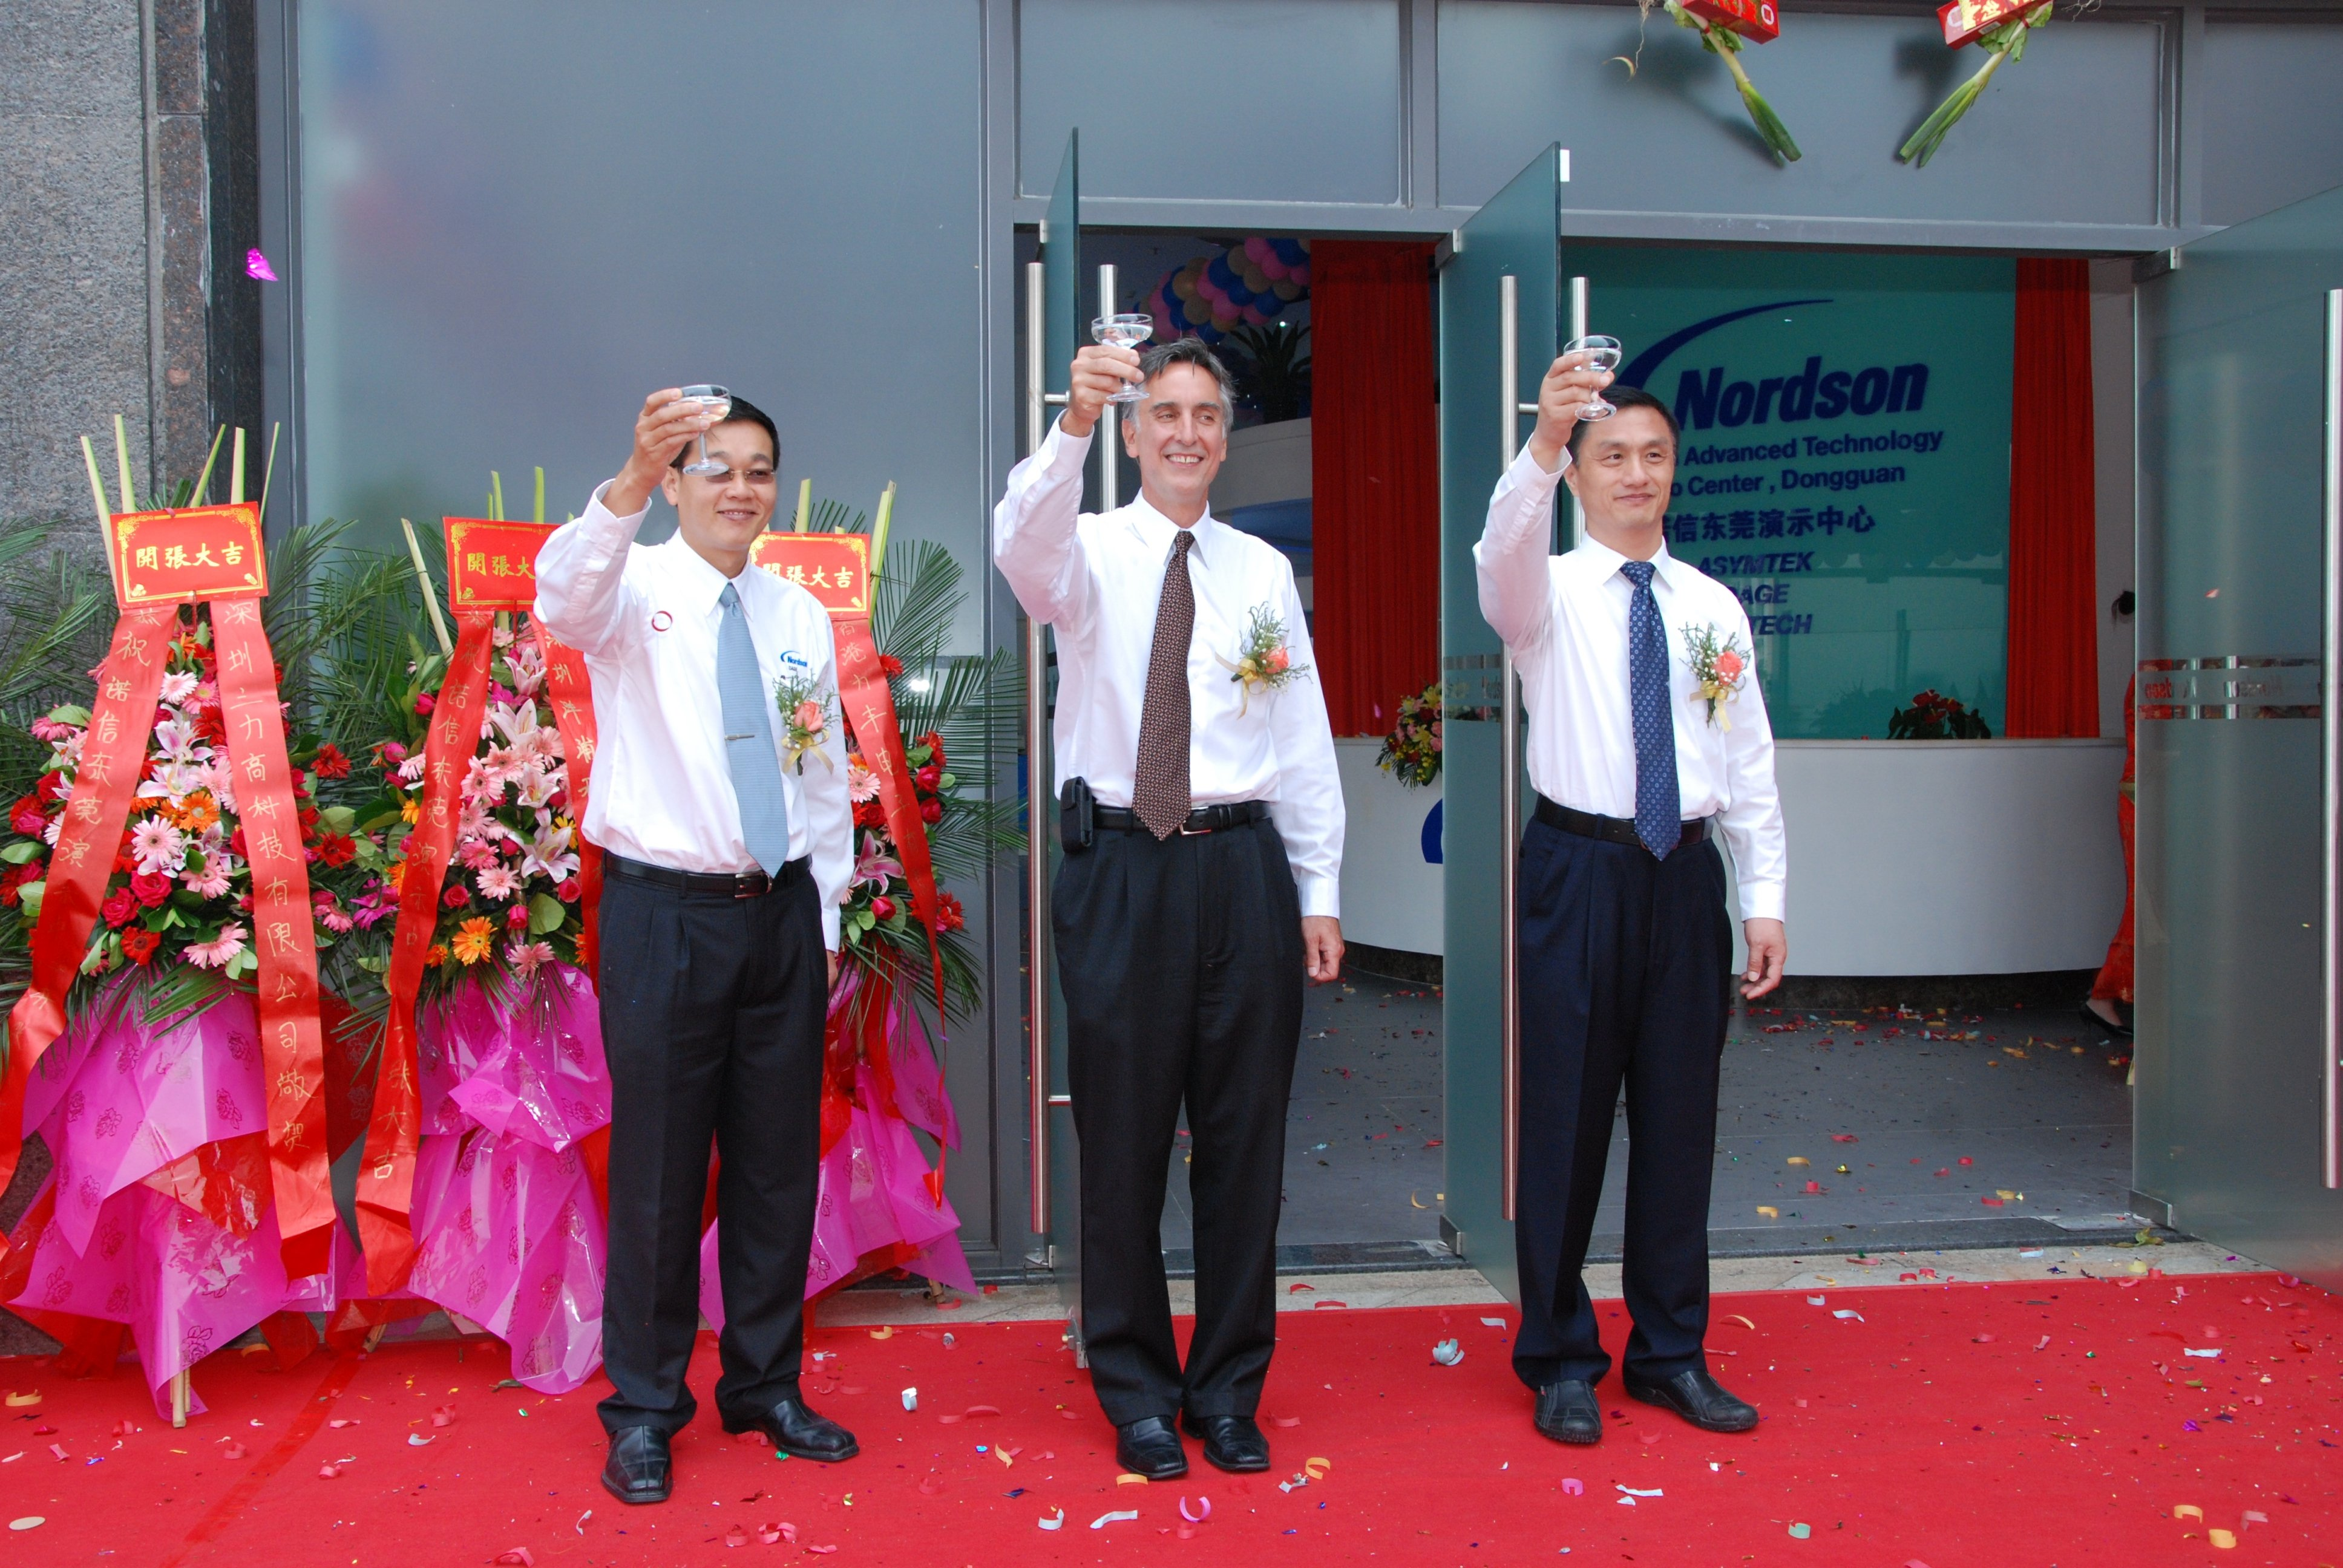 Nordson Corporation Opens New Chinese Demo Center To